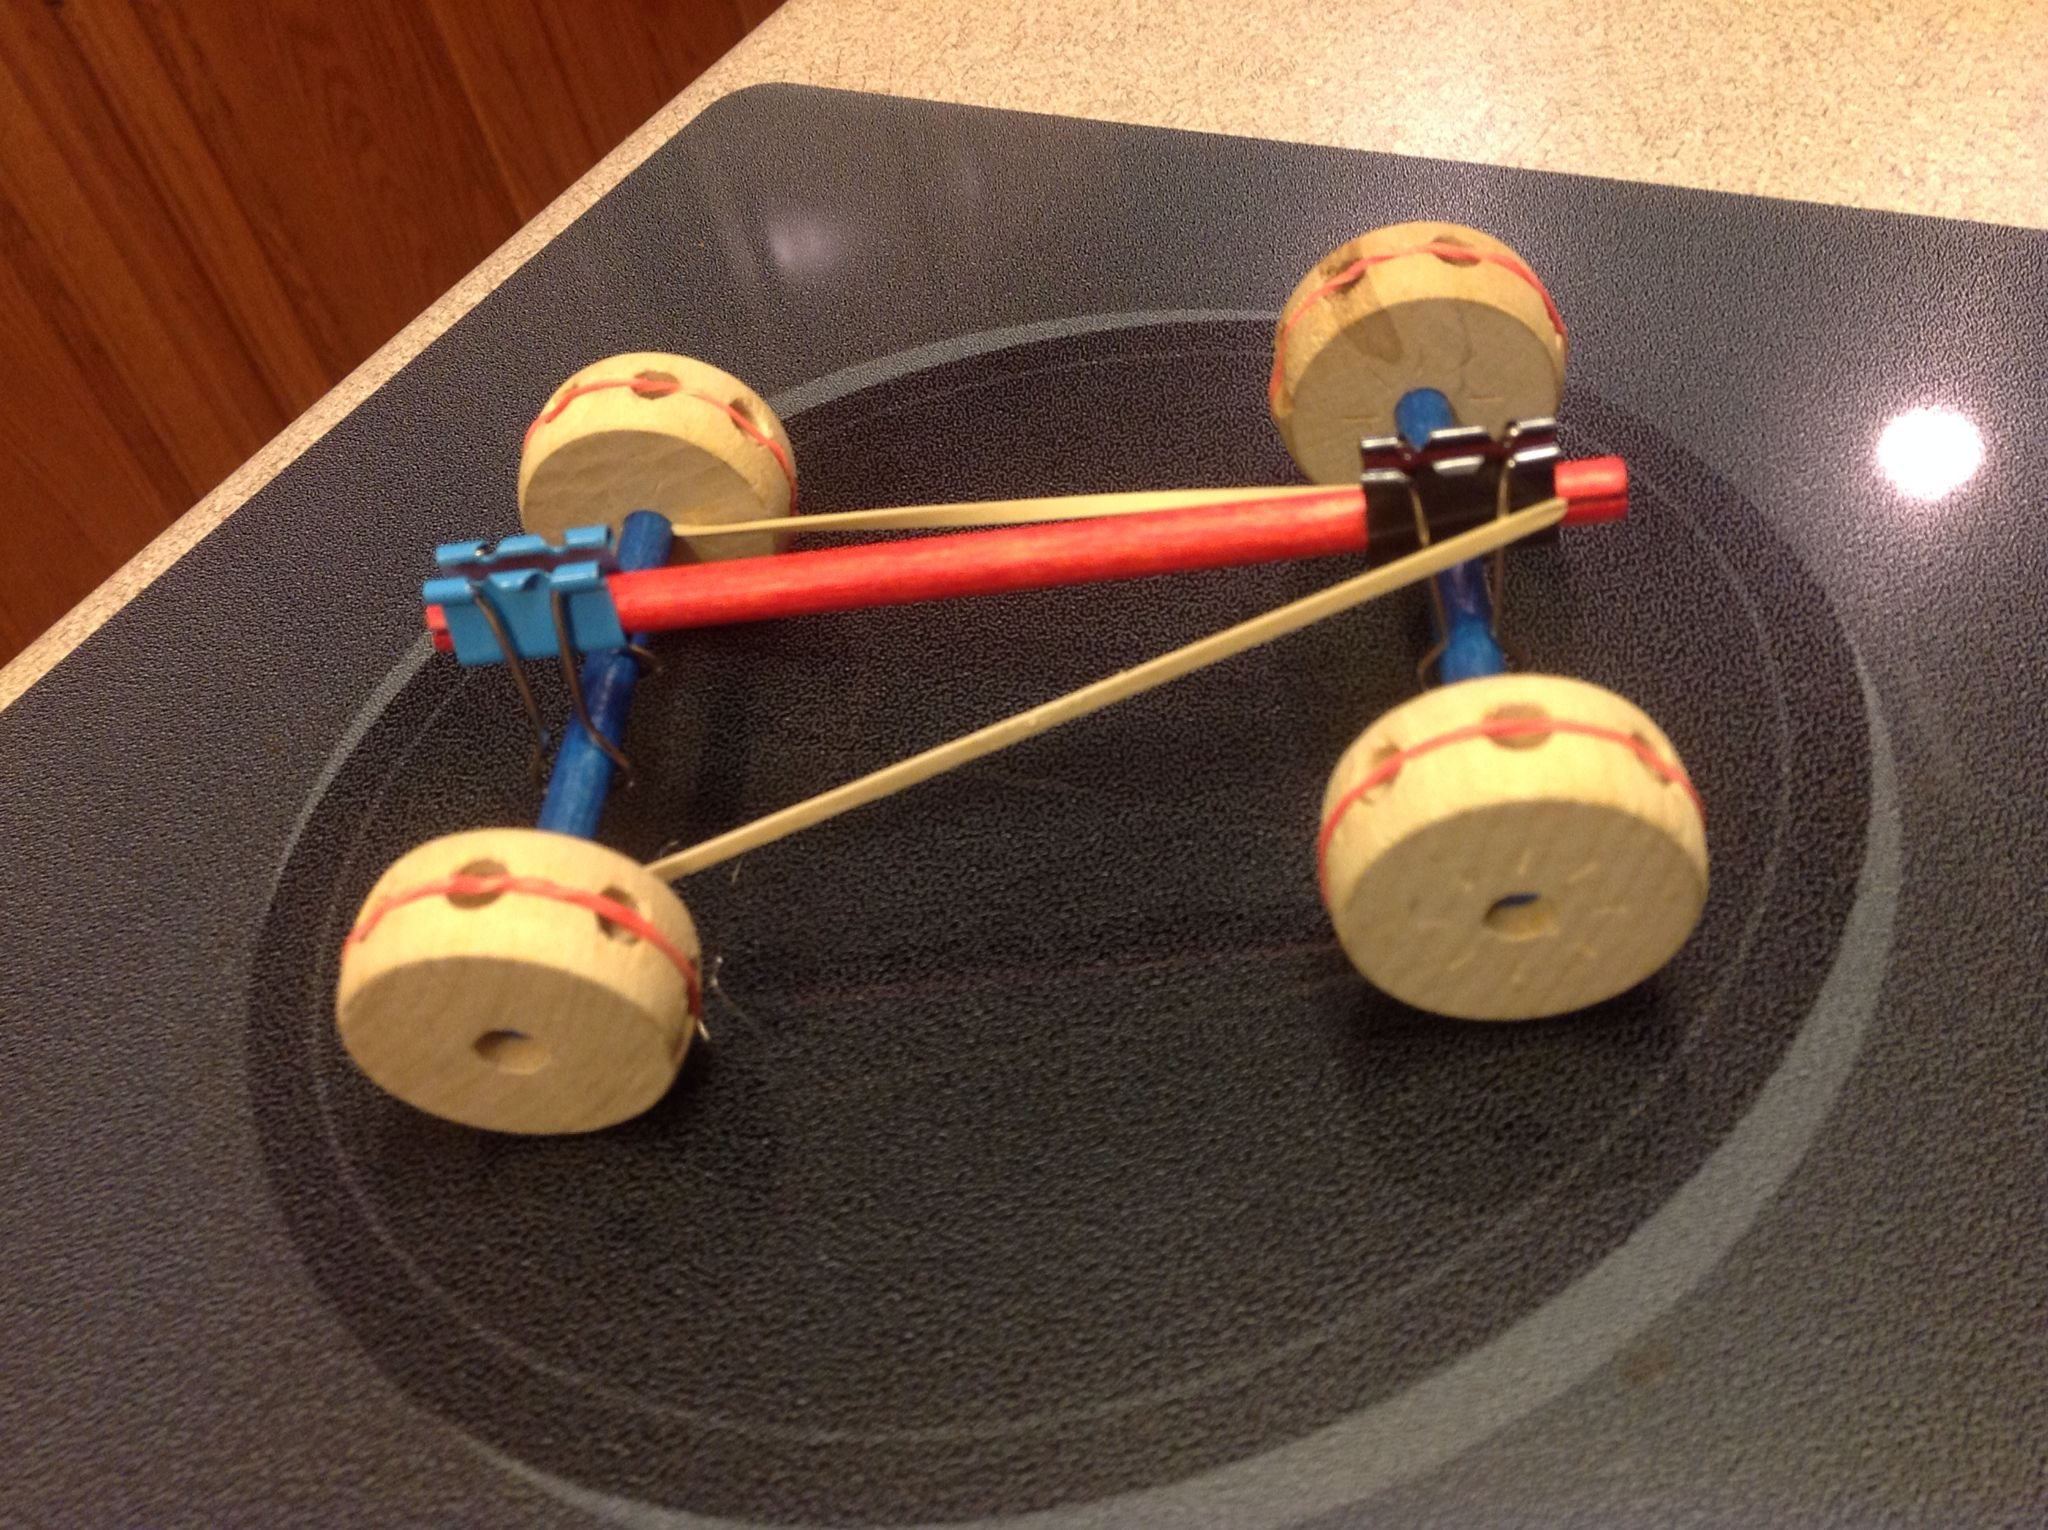 Toys For 9 Year Olds Can Invent : Rubber band powered car out of tinker toys and clips invented by